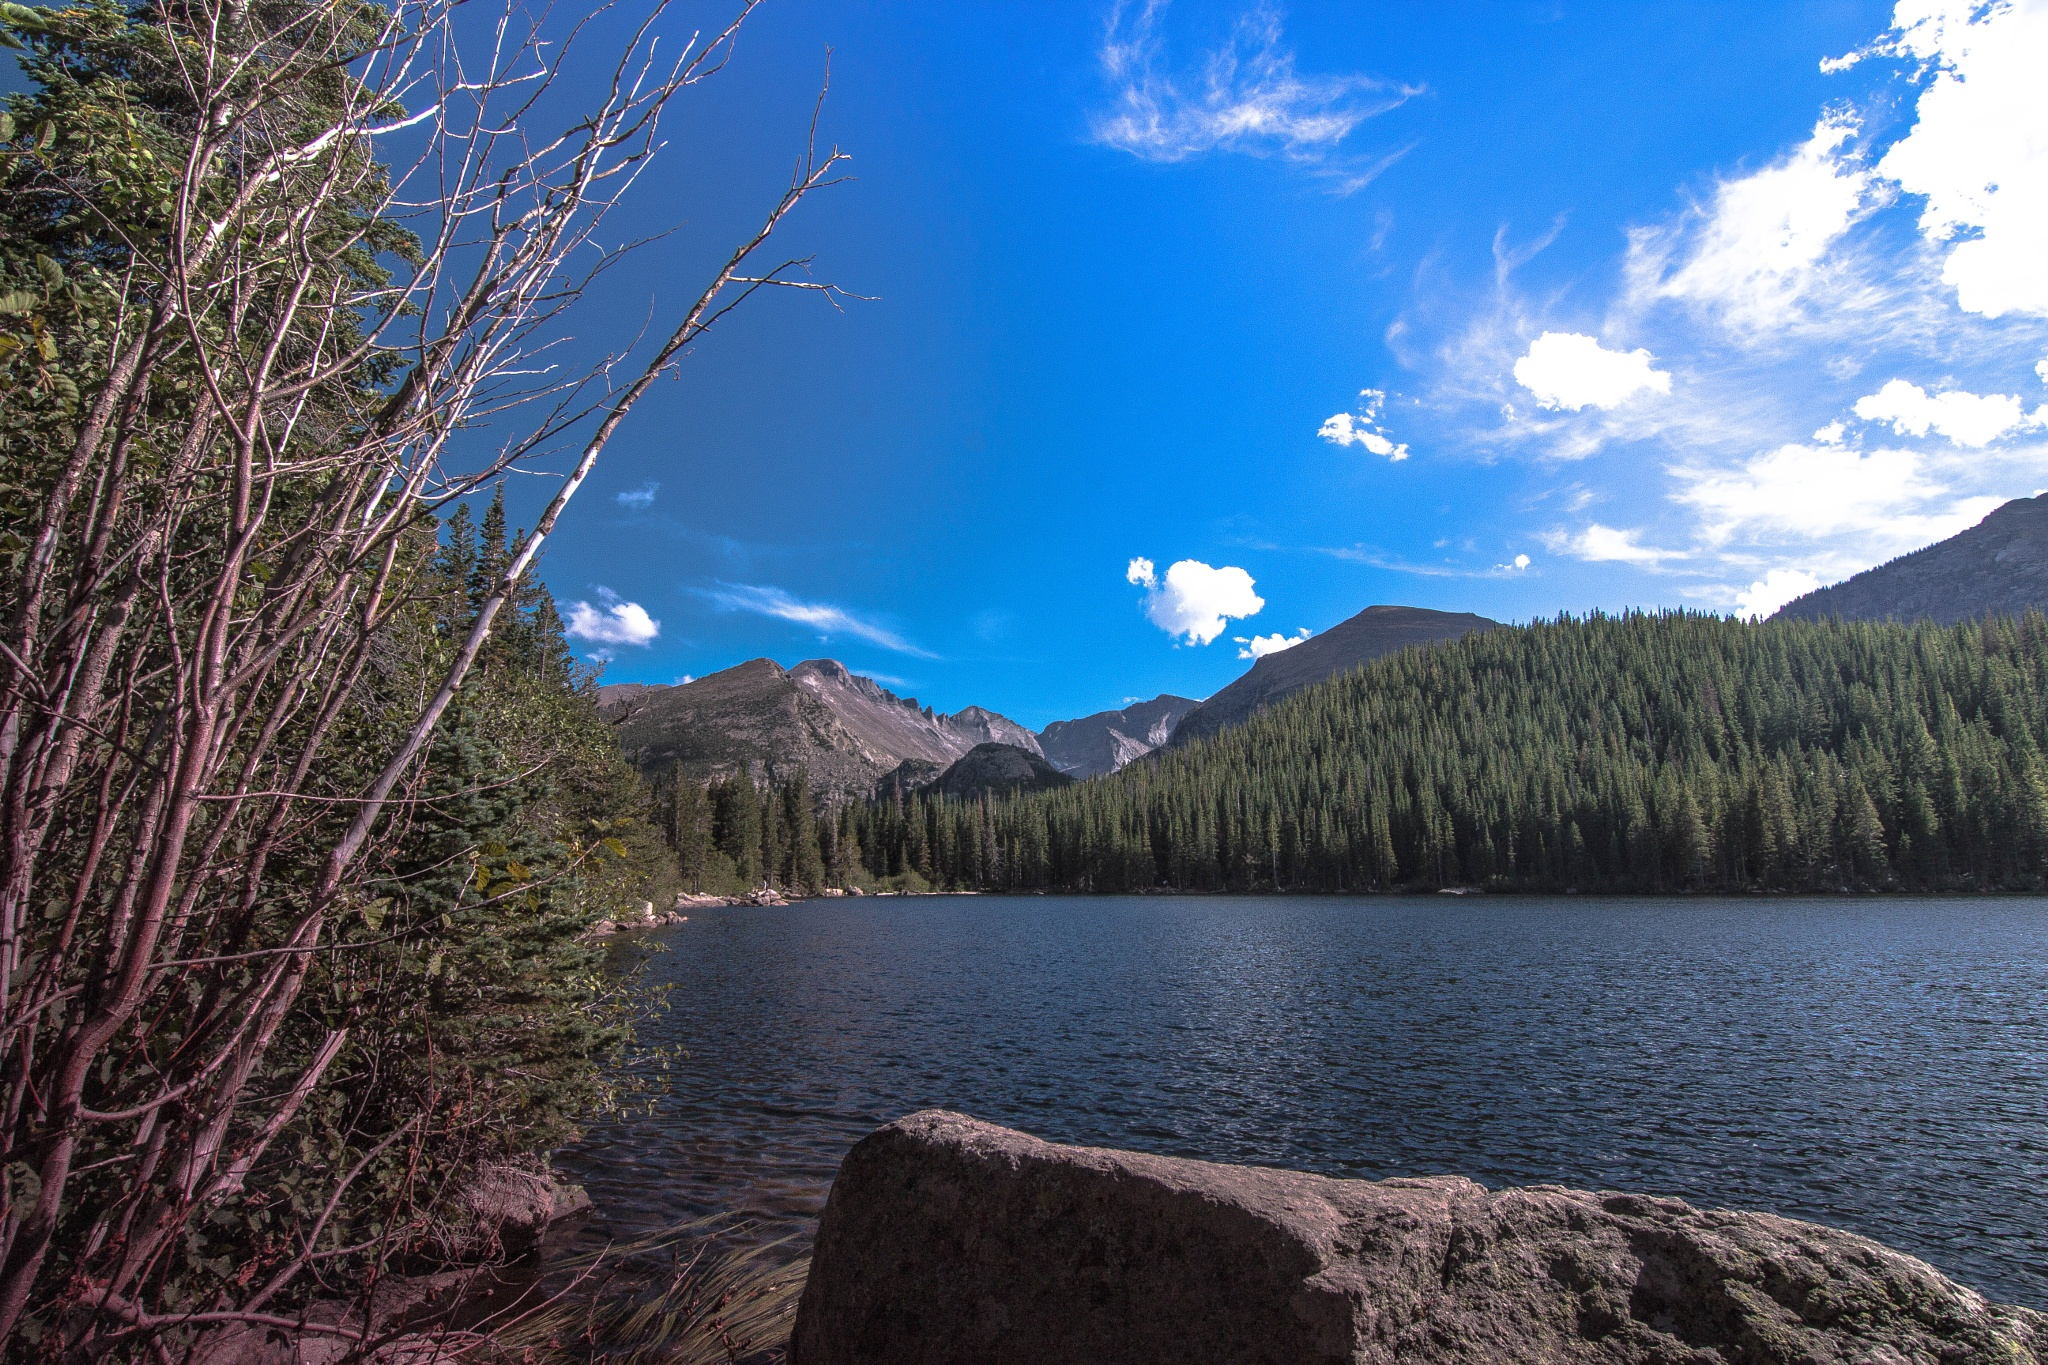 The Sky Blue, The Mountains High, The Lake Deep by Peter Cavaliere